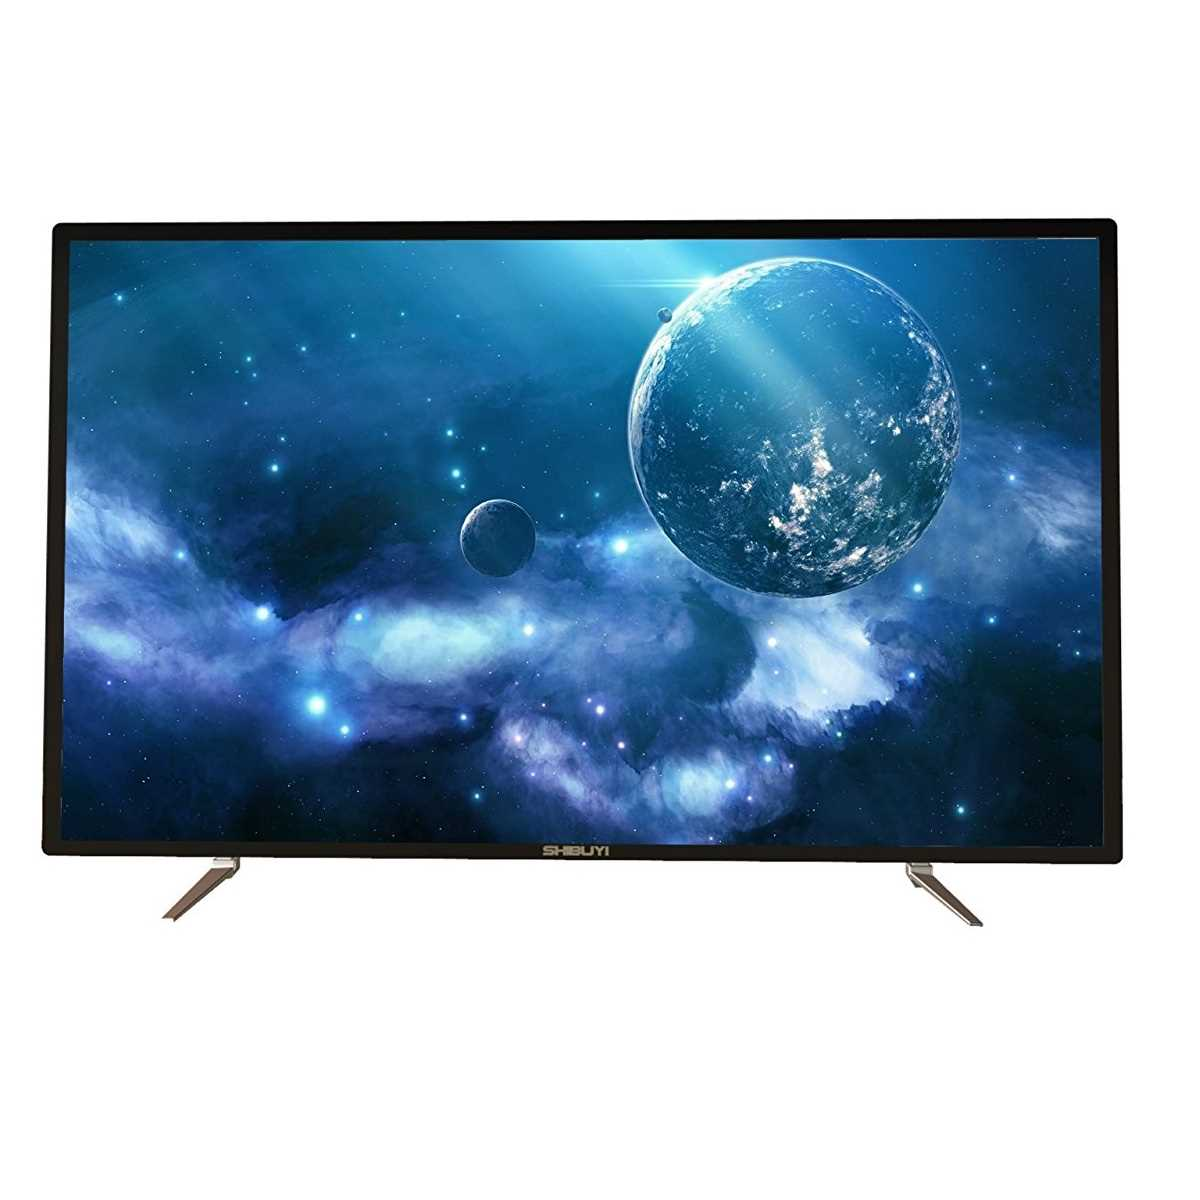 Shibuyi 32NS-SA 32 Inch HD Ready LED Television